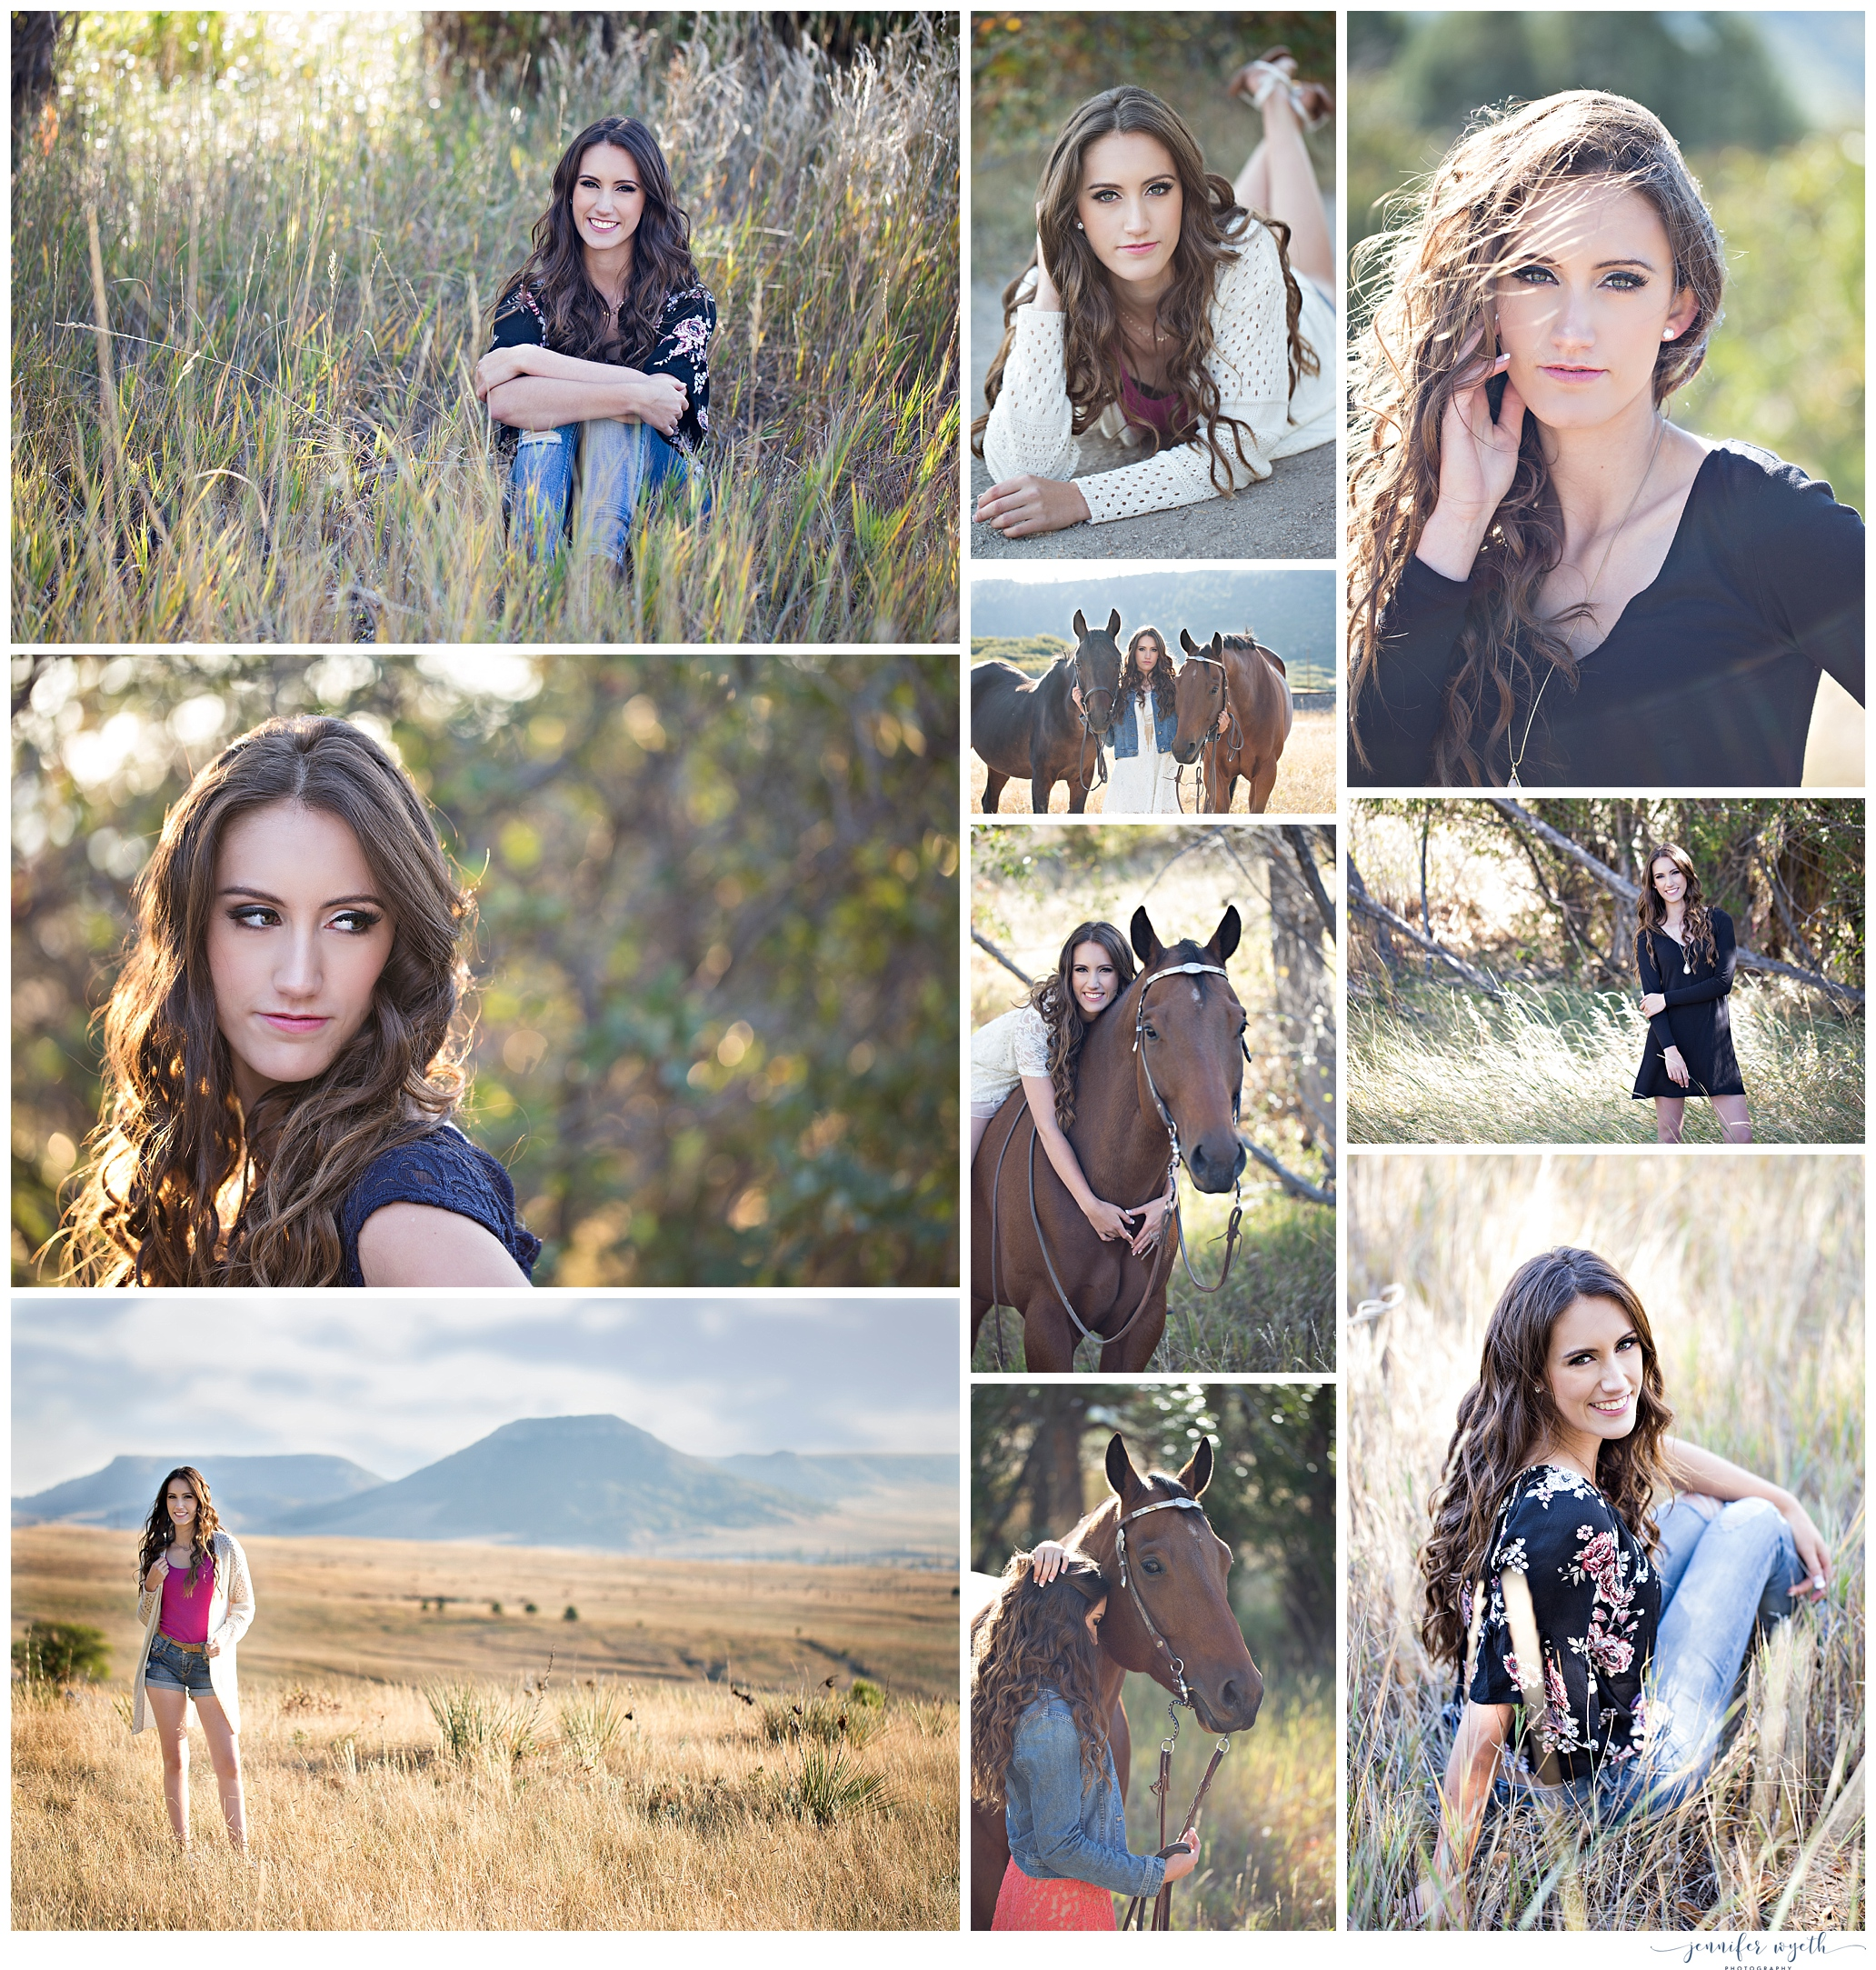 Jennifer-Wyeth-photography-senior-pictures-colorado-springs-photographer_0276.jpg